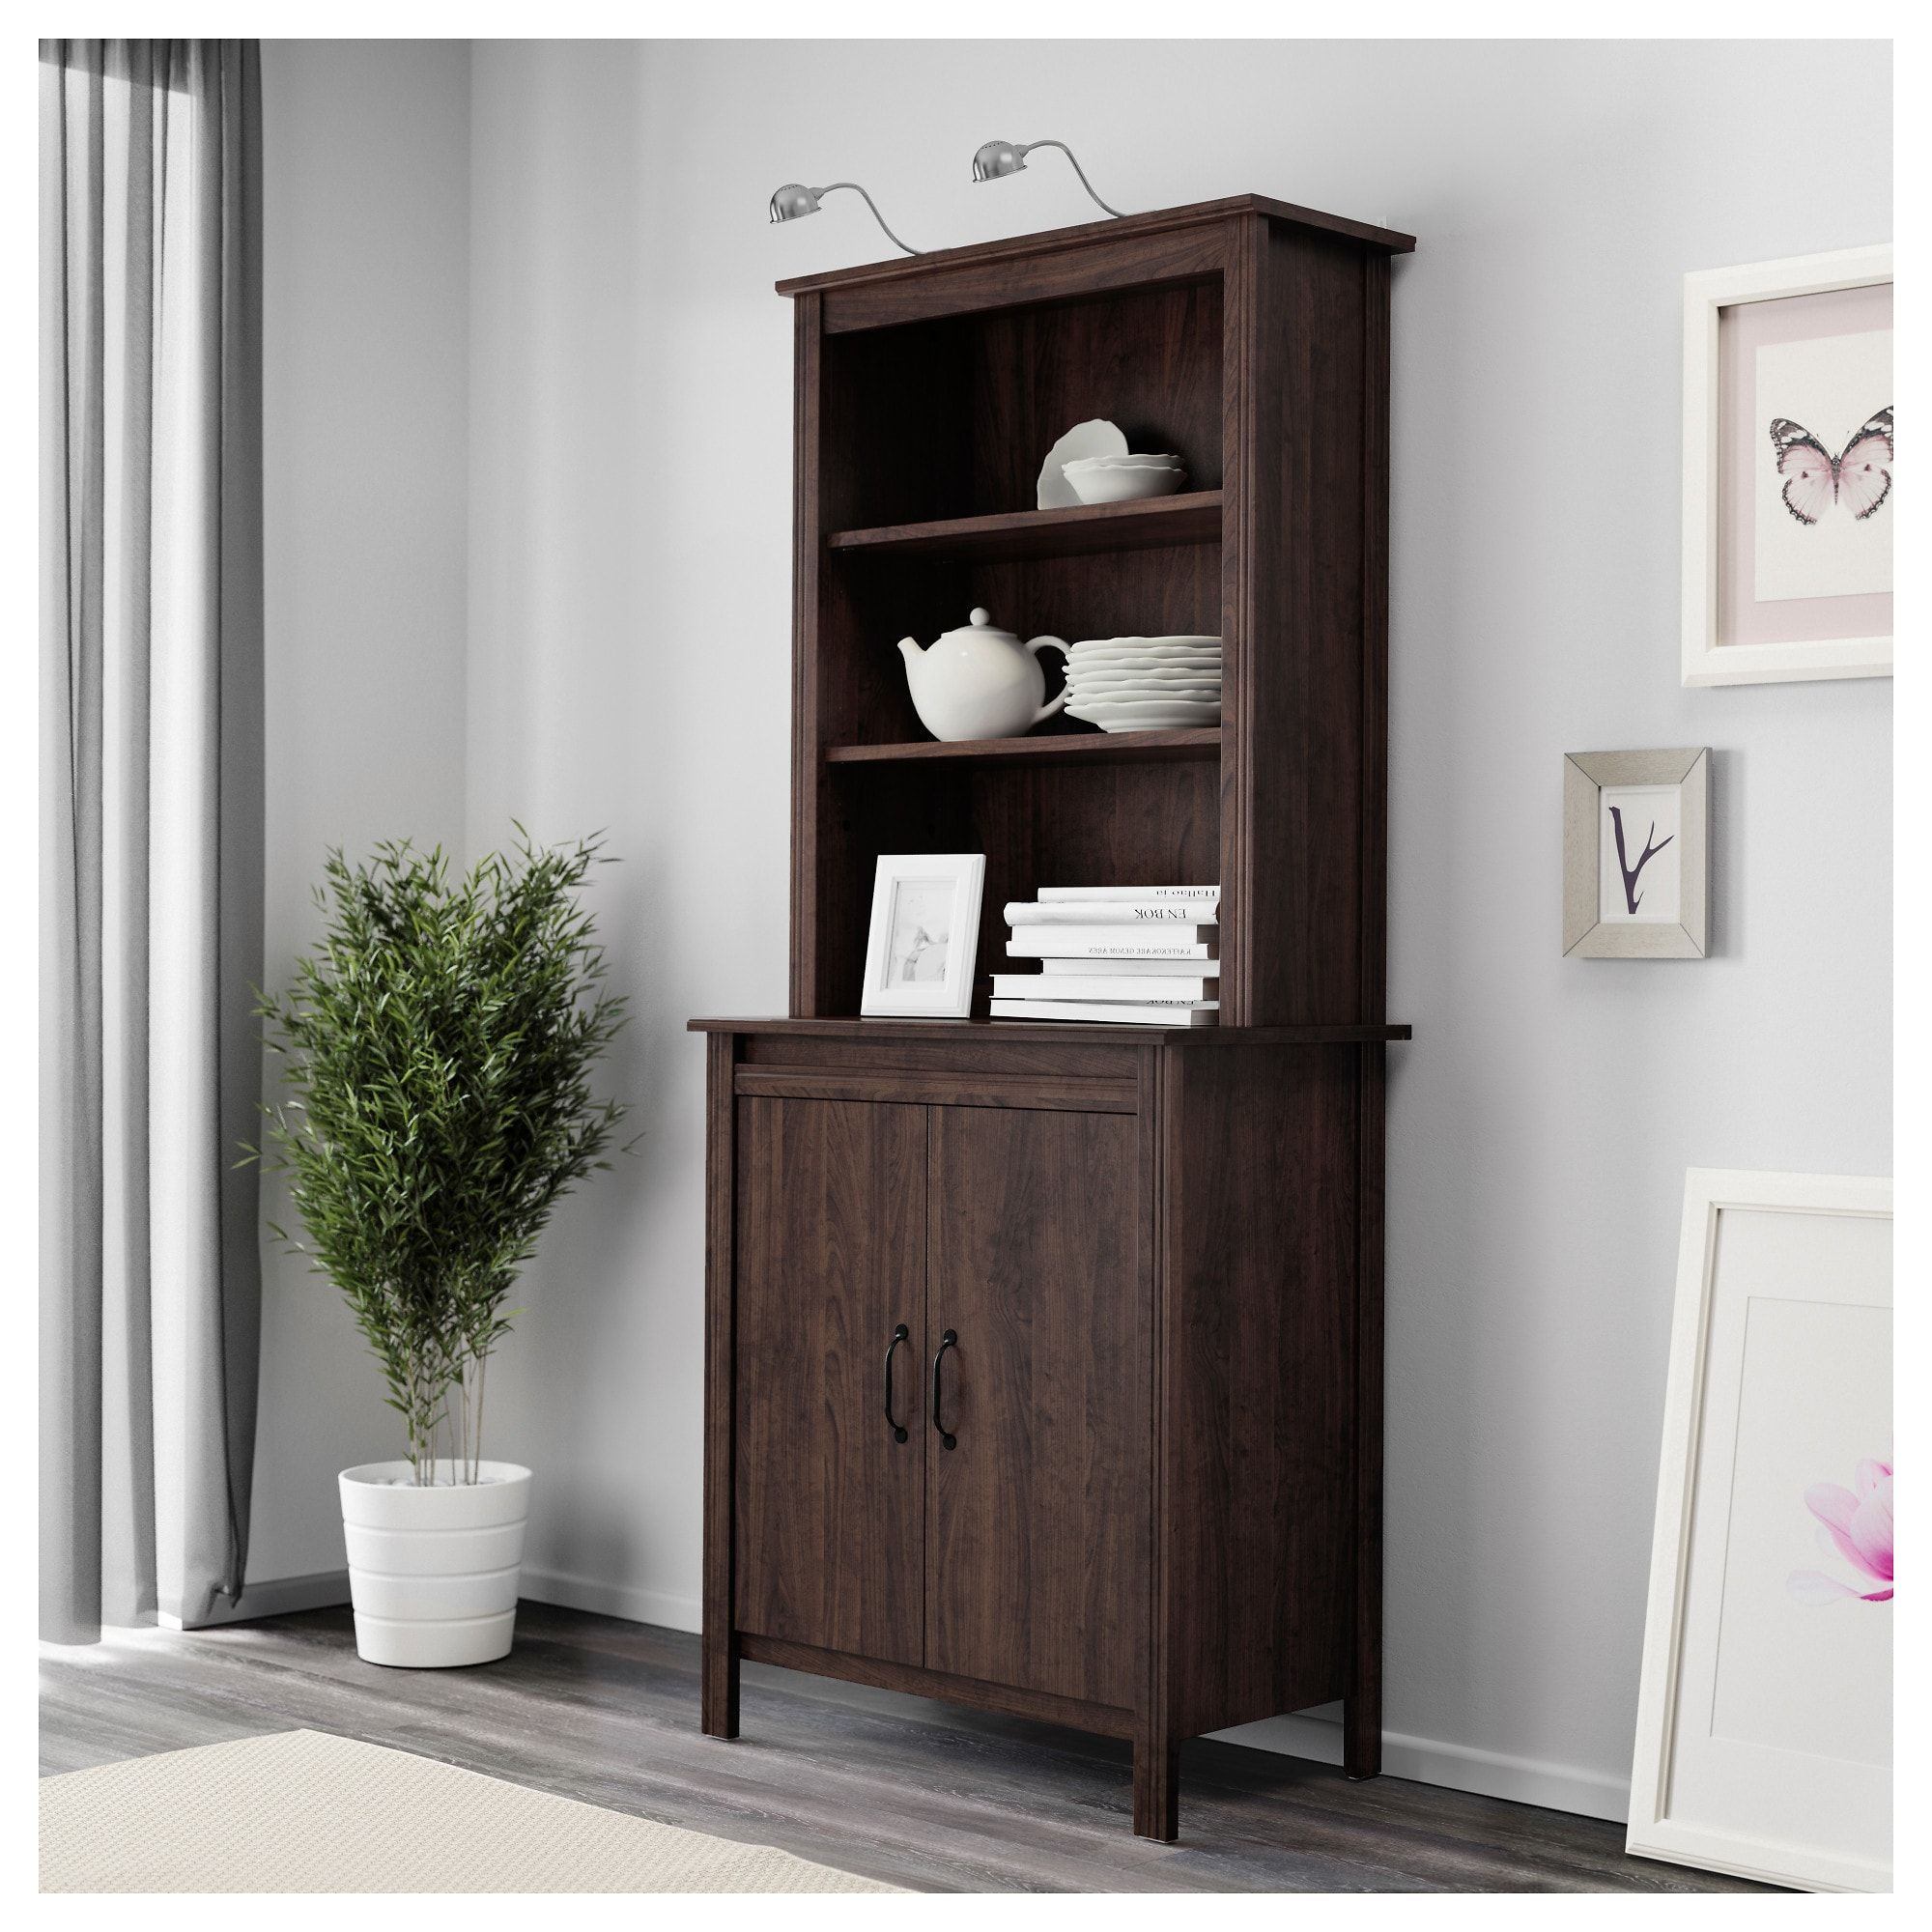 Brusali High Cabinet With Doors Brown